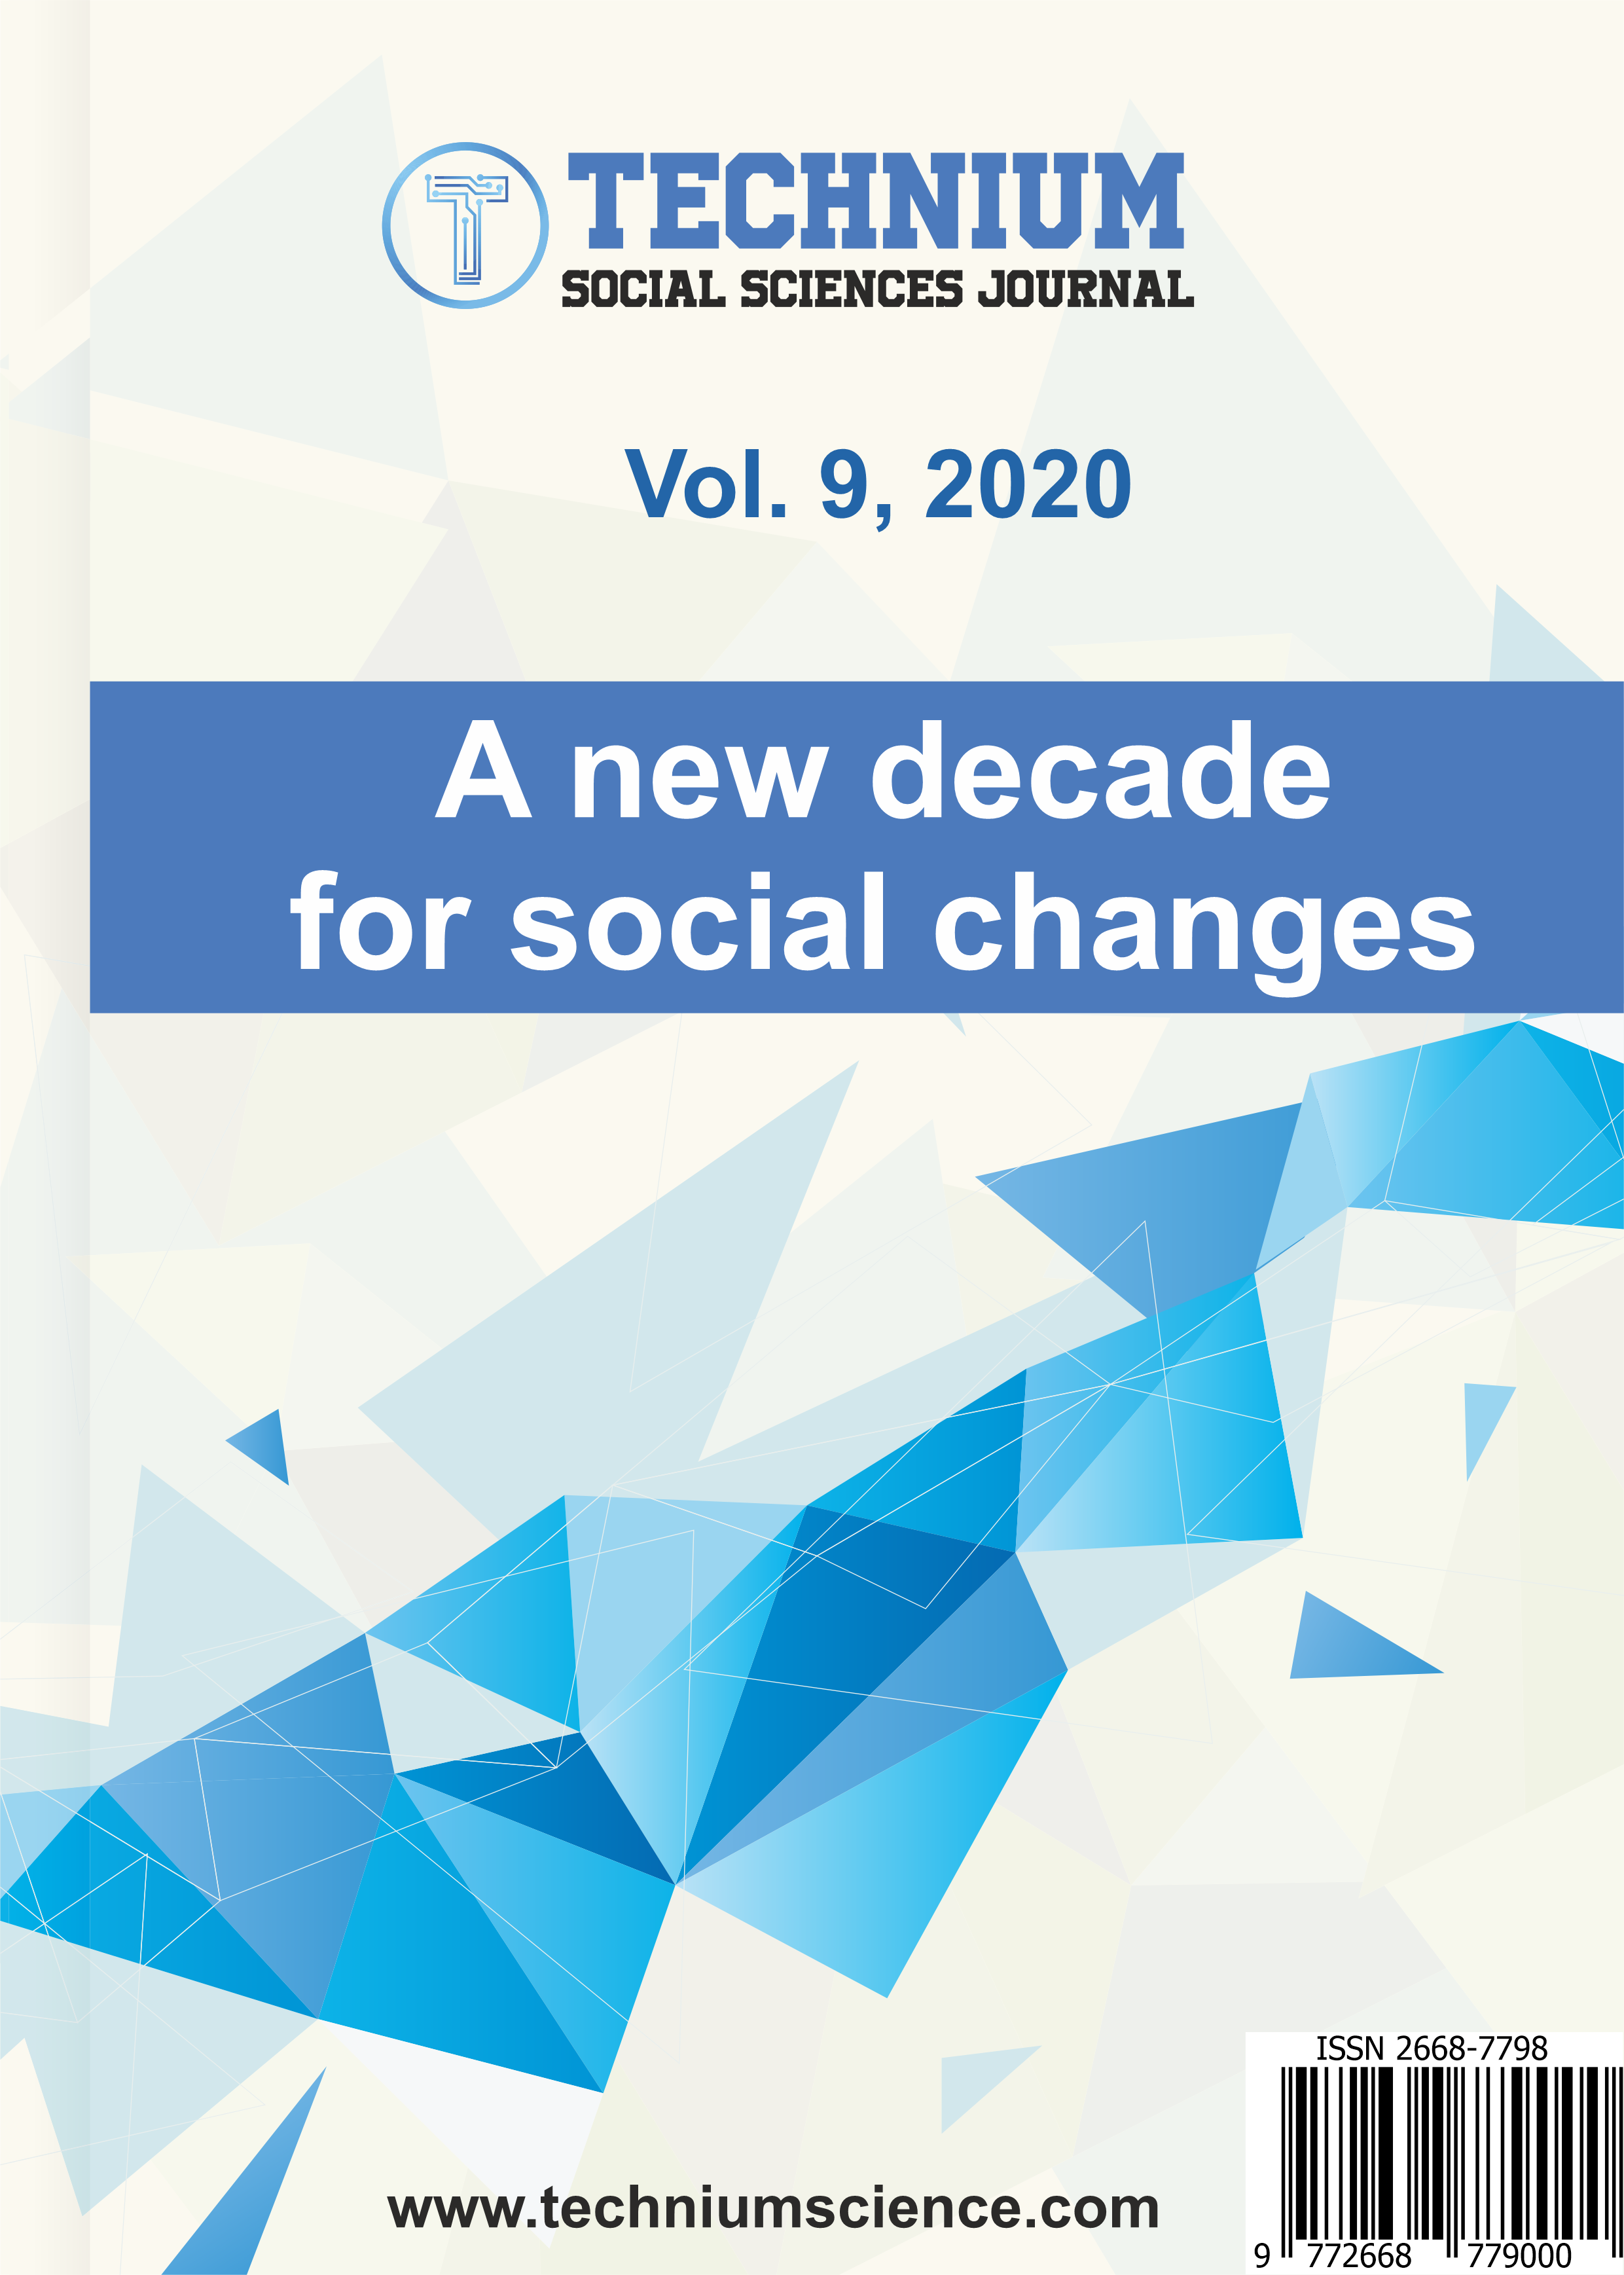 View Vol. 9 (2020): A new decade for social changes